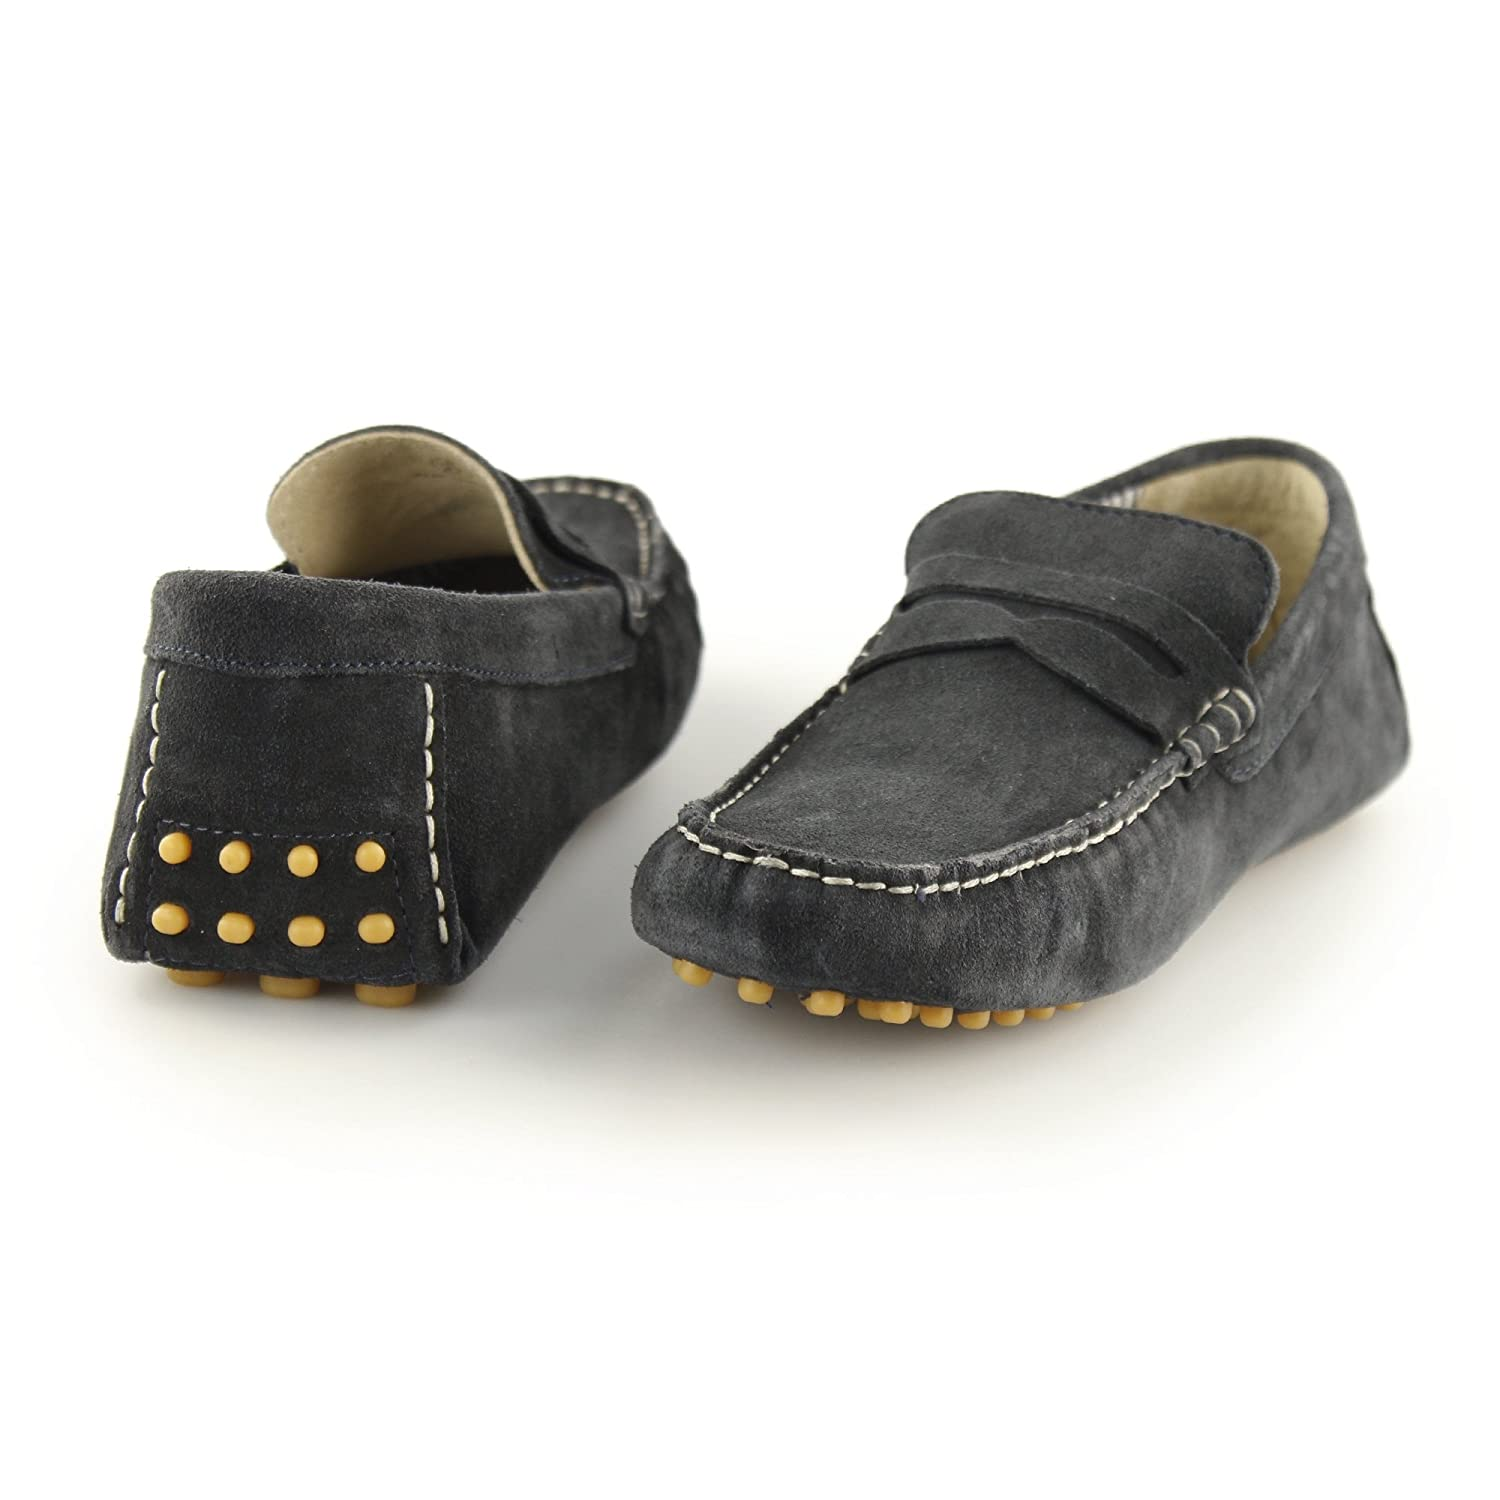 Ikon JENSON Mens Suede Leather Slip On Moccasin Casual Driving Loafers Navy Blue